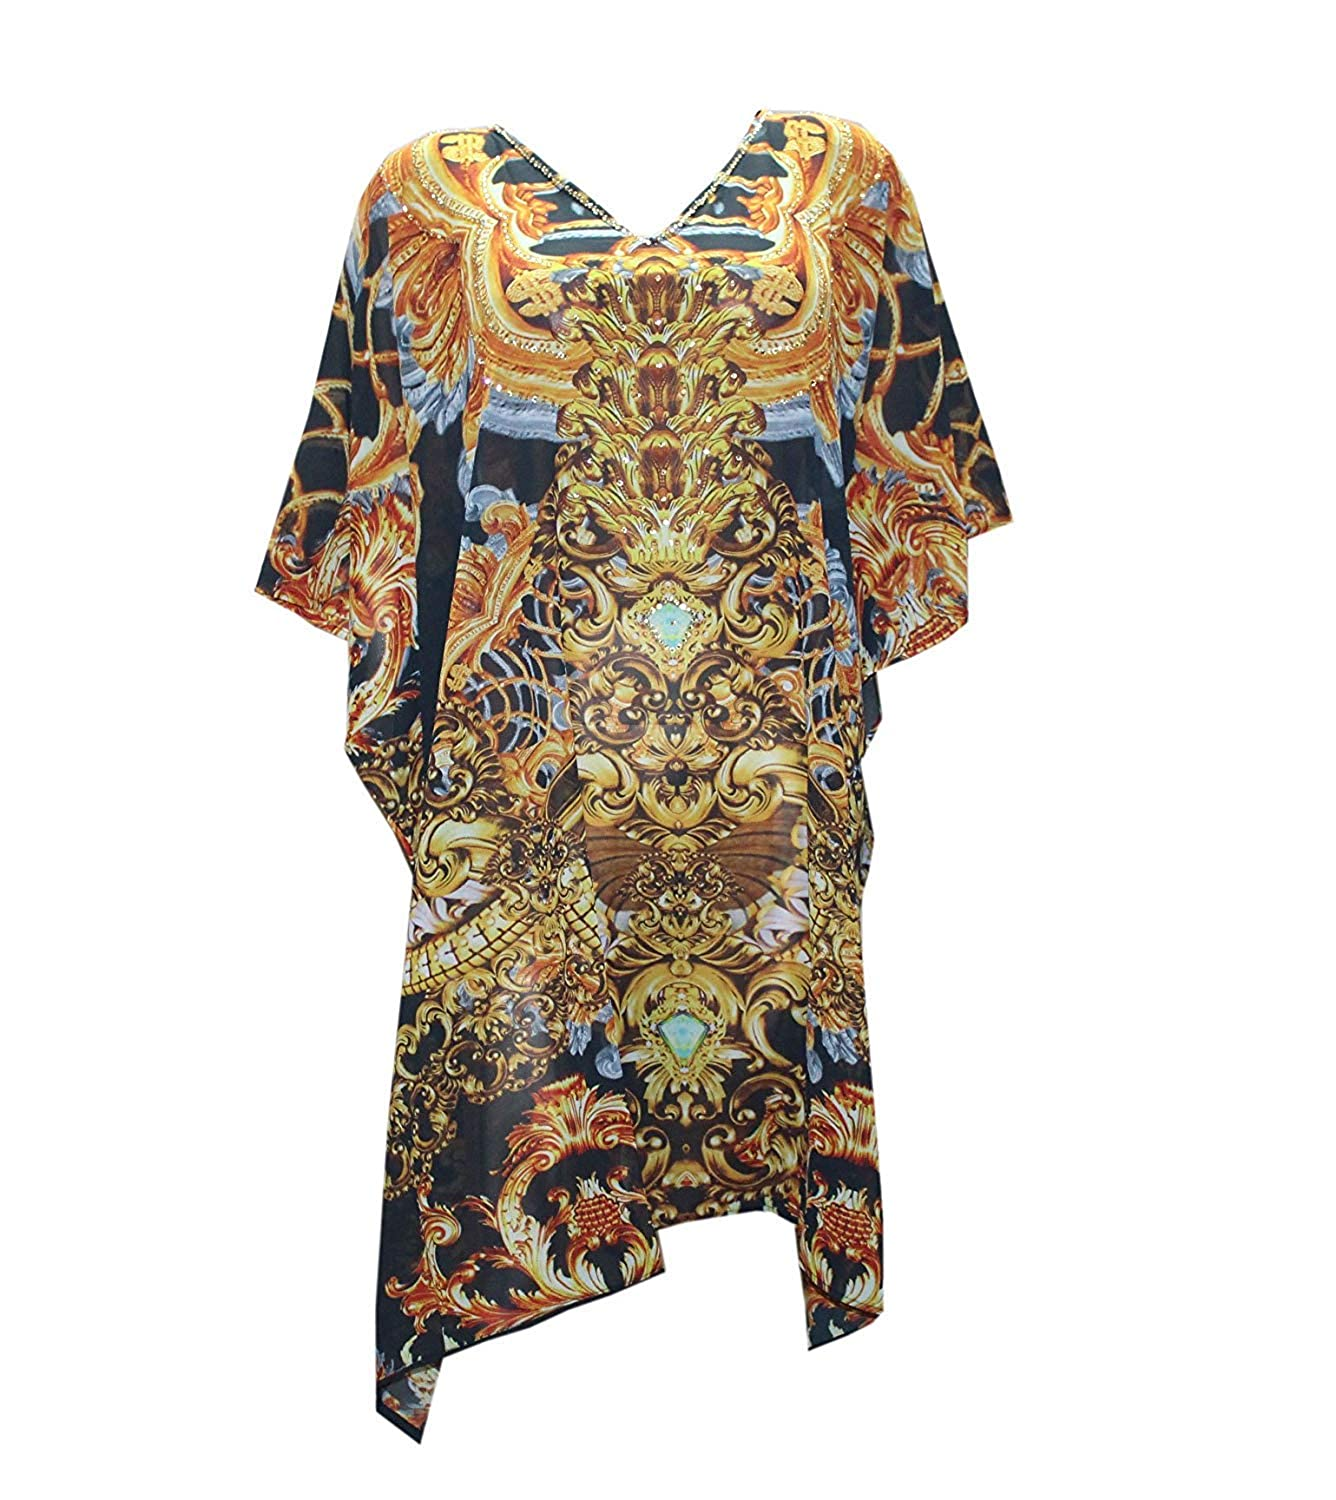 B01g918meo Odishabazaar Designer Digital Print Long Embellished Satin Silk Kaftan Resort Short Beach wear